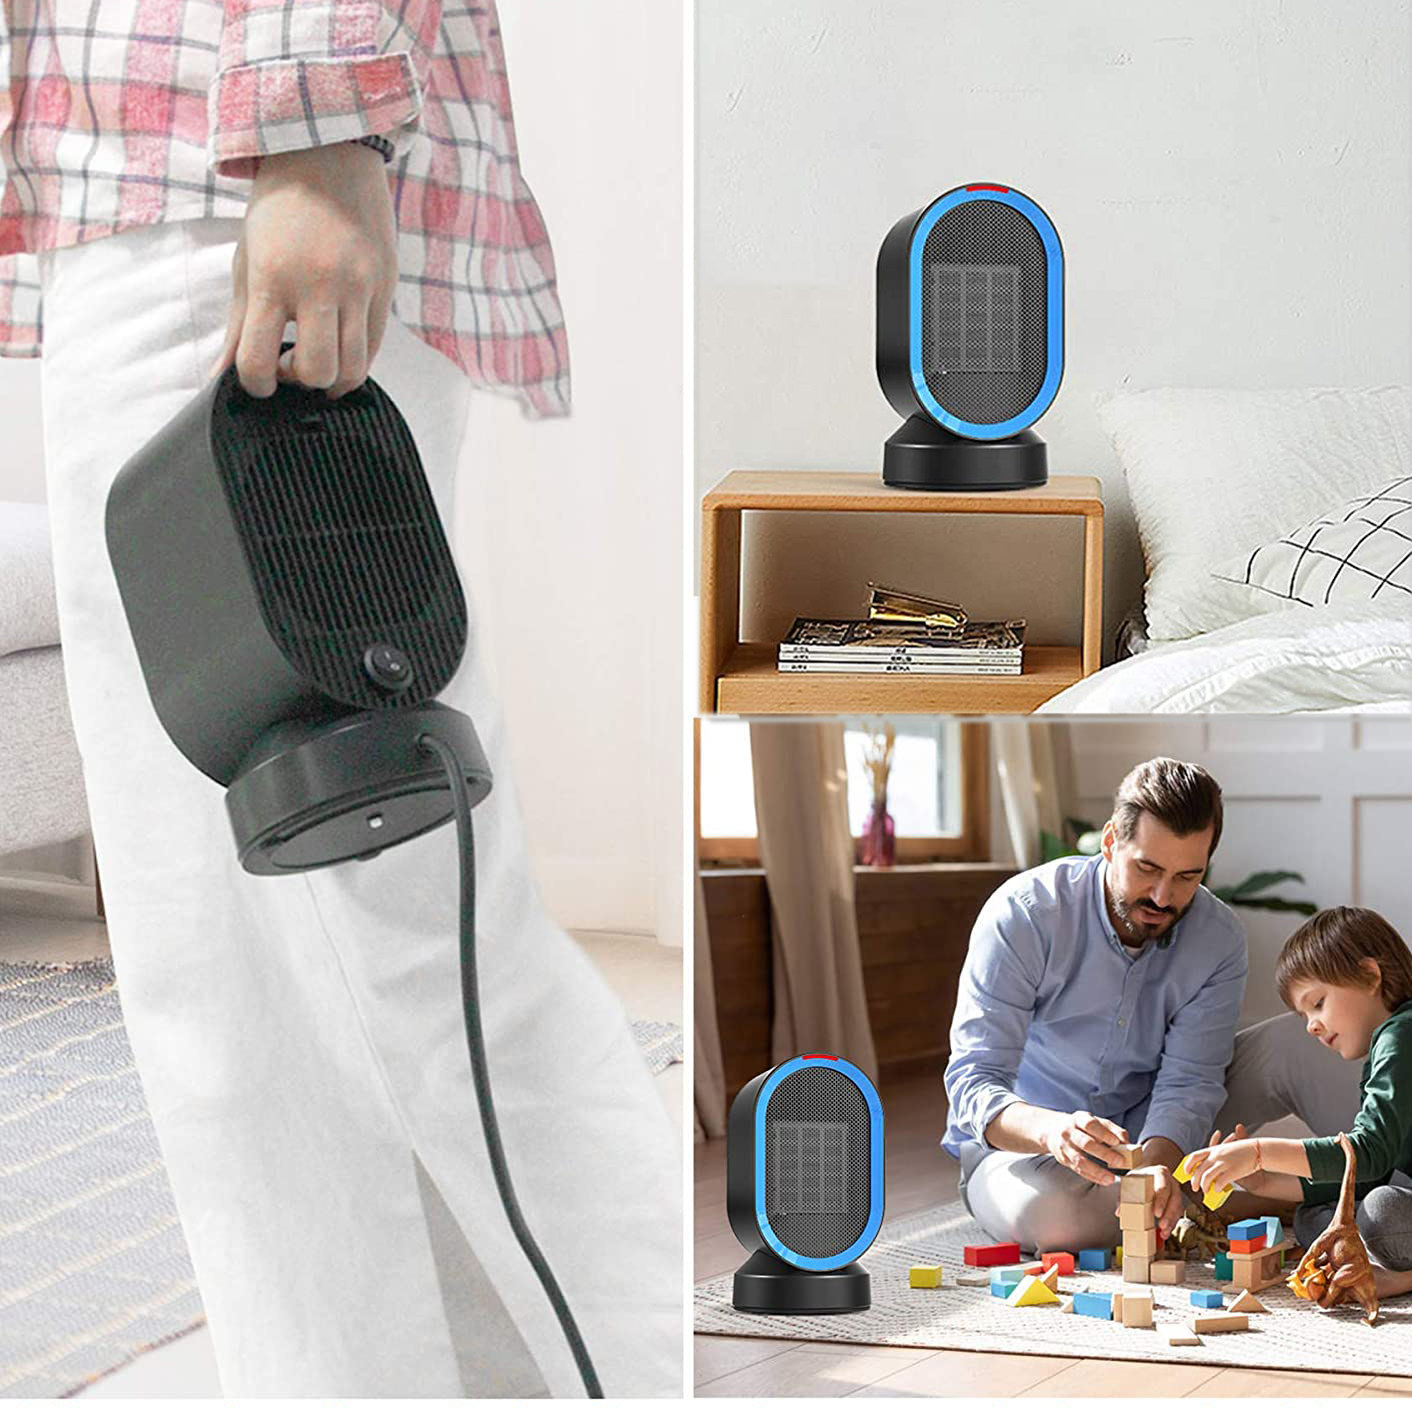 An image of someone carrying a small space heater, an image of the heater on a table, and an image of it on the floor while a parent and child play with blocks